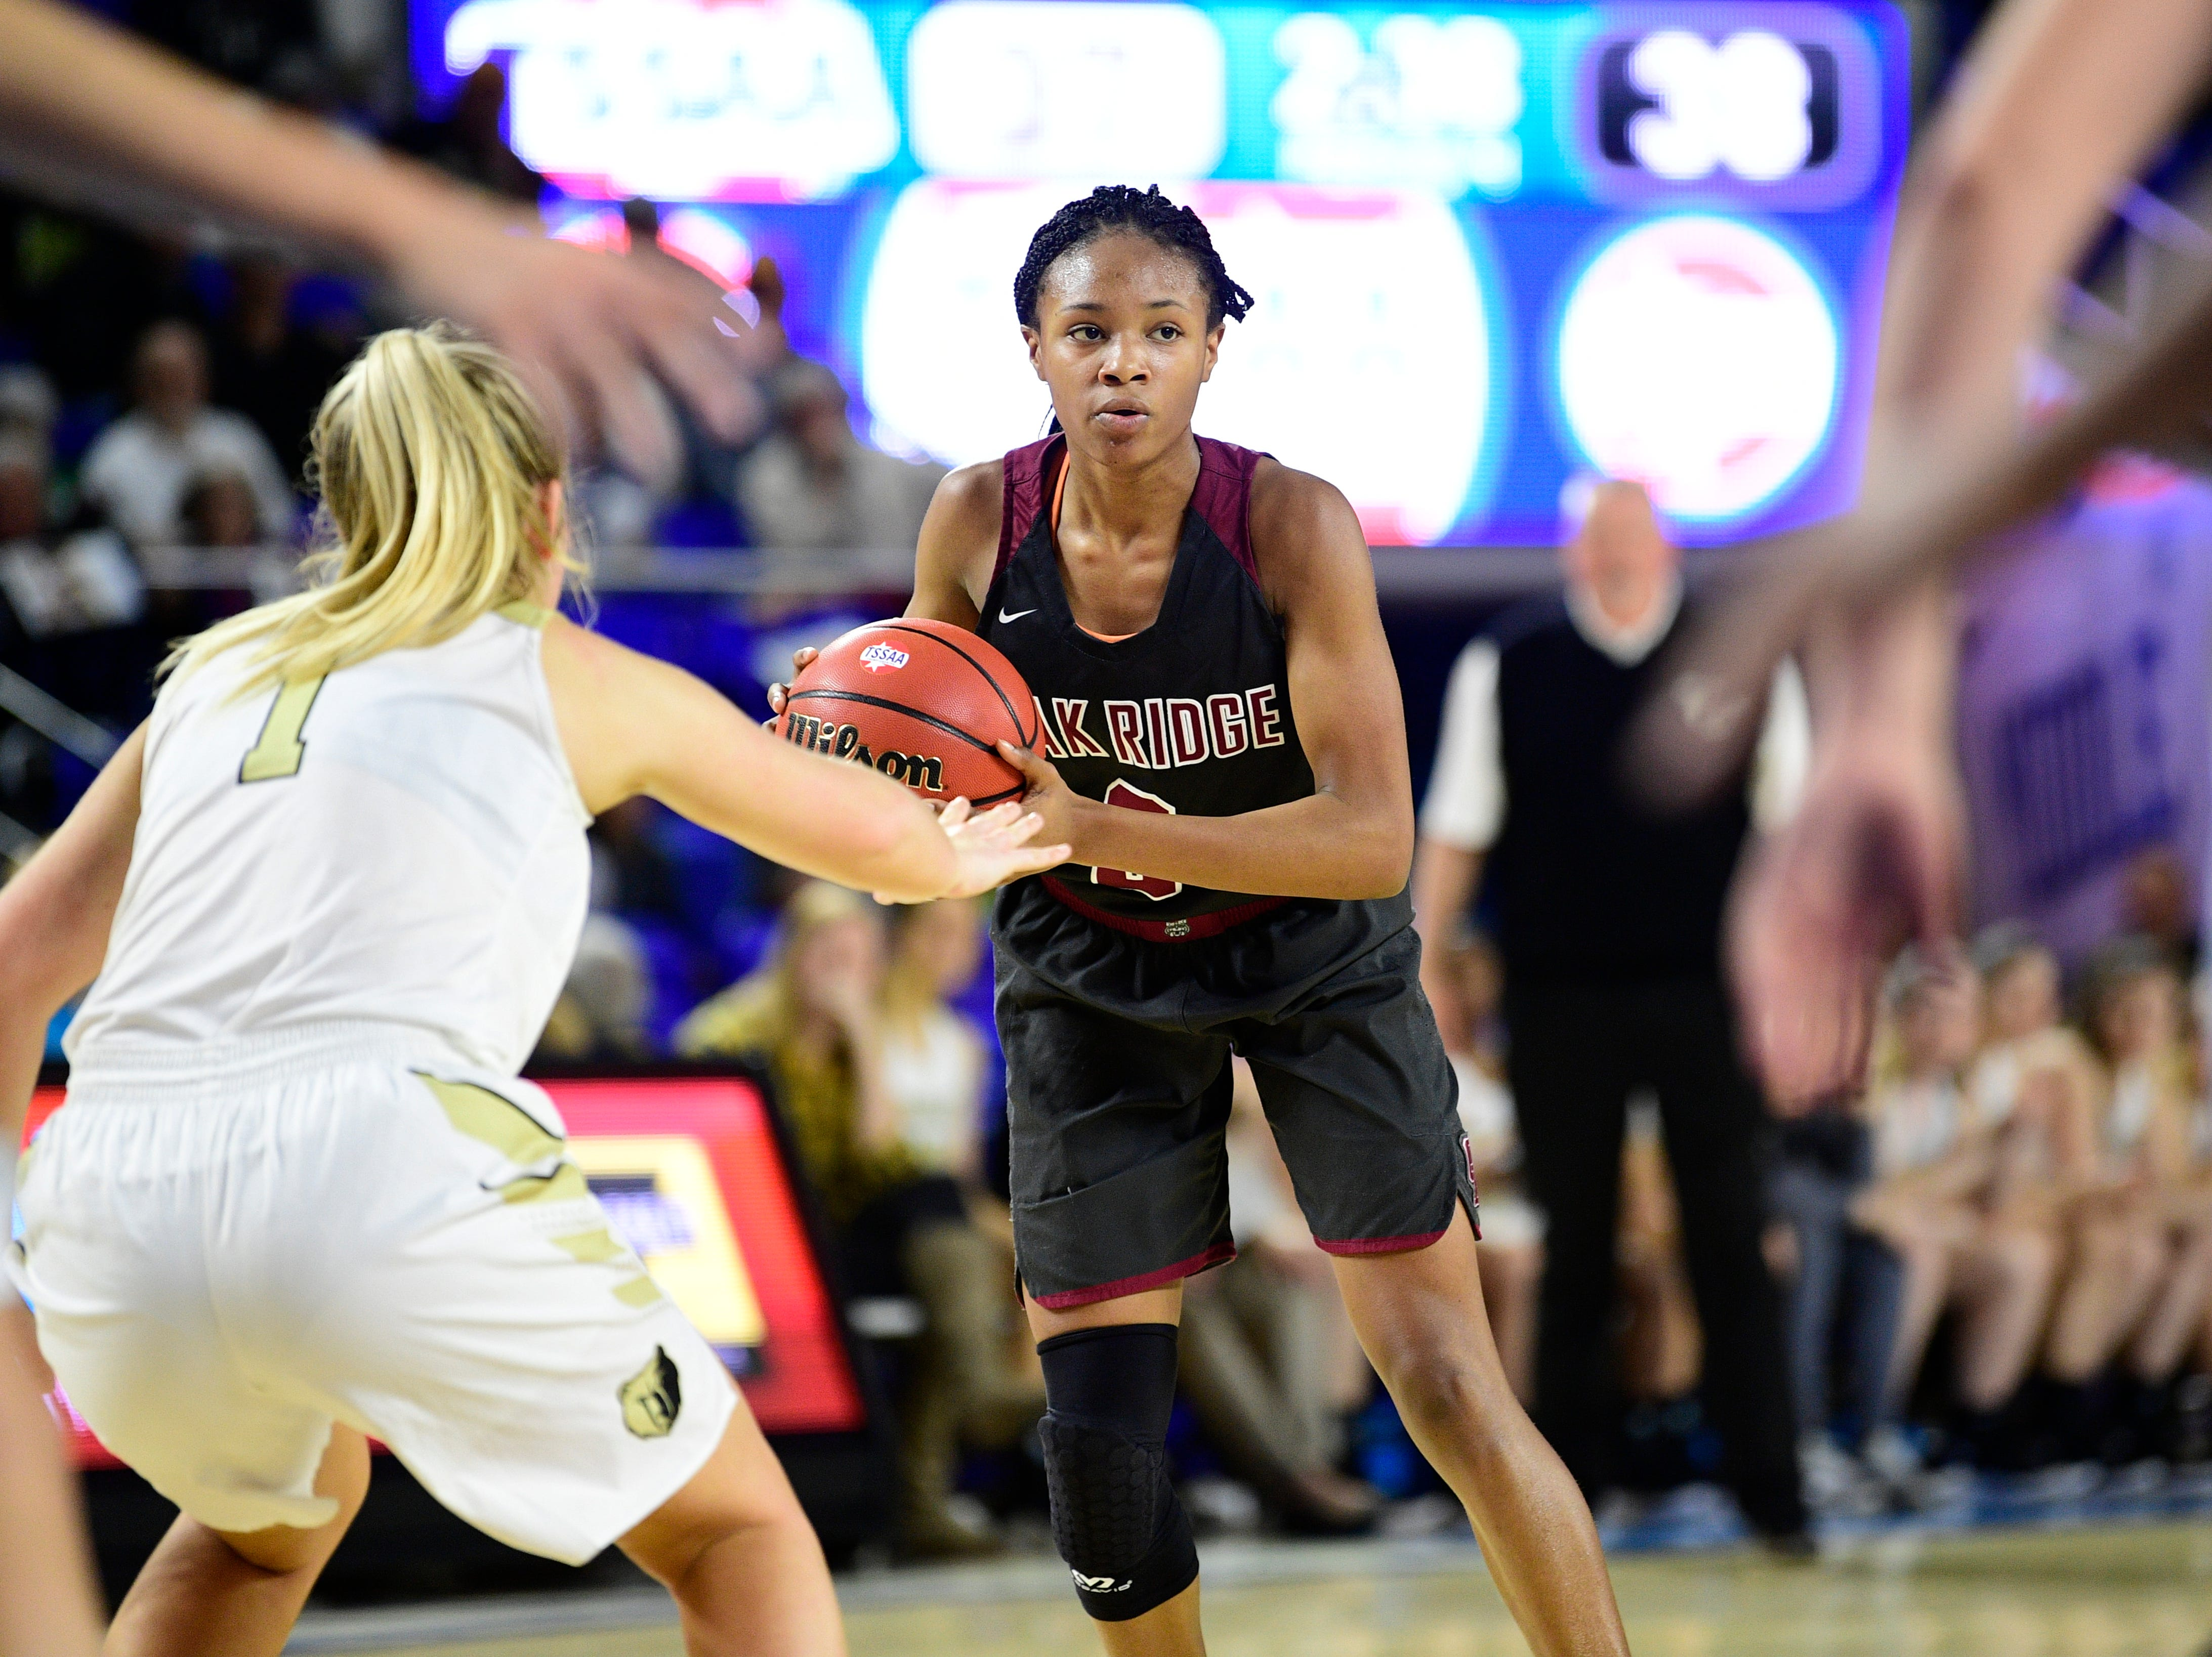 Oak Ridge's Khamari Mitchell-Steens (2) looks to pass during a game between Oak Ridge and Bradley Central at the TSSAA girls state tournament at the Murphy Center in Murfreesboro, Tennessee on Friday, March 8, 2019.